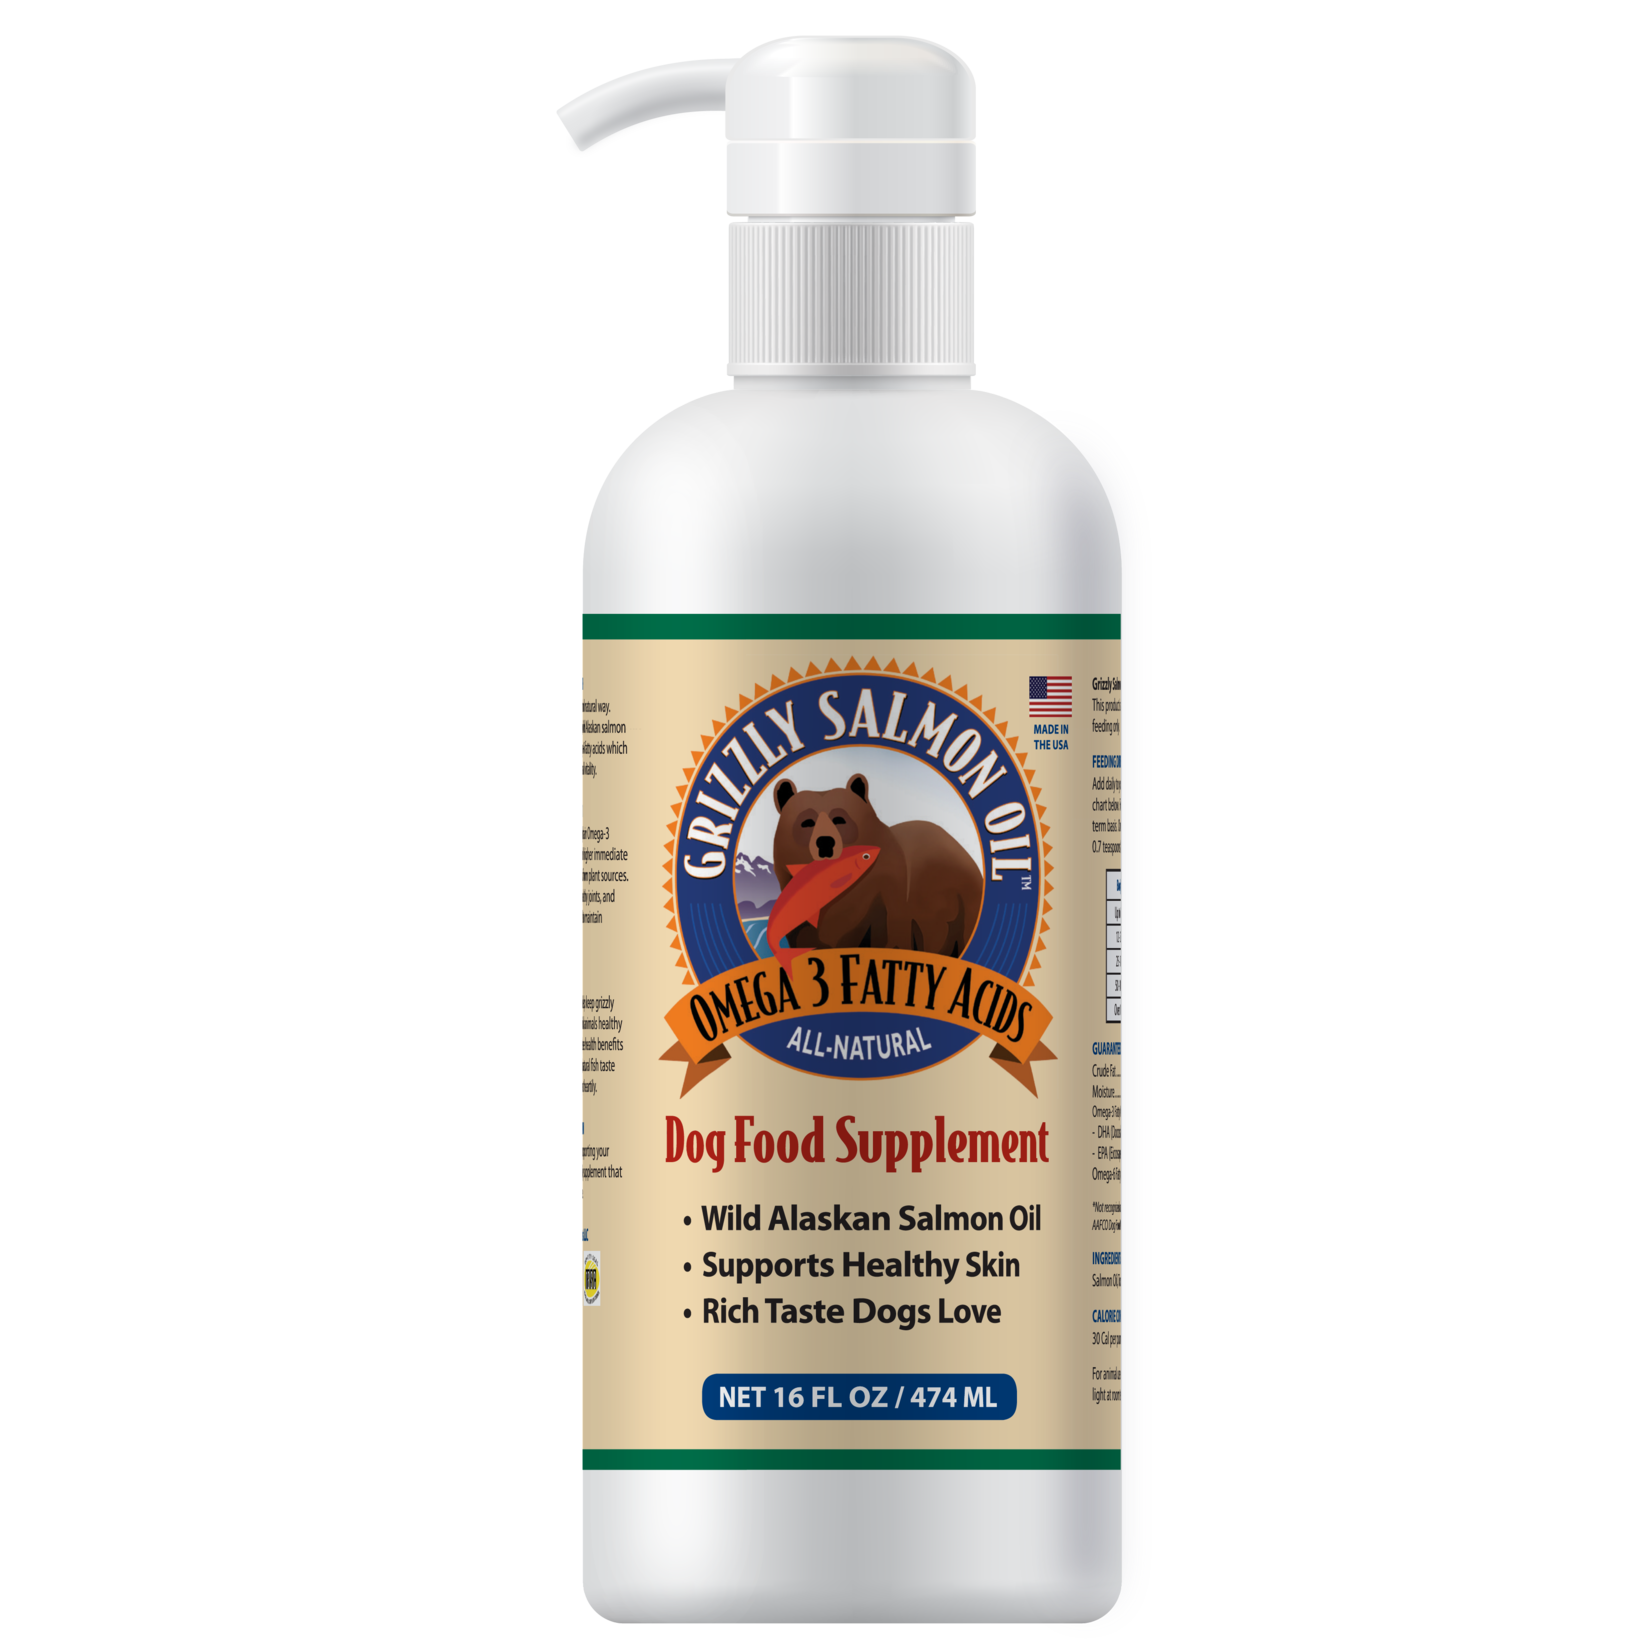 Grizzly Grizzly Salmon Oil